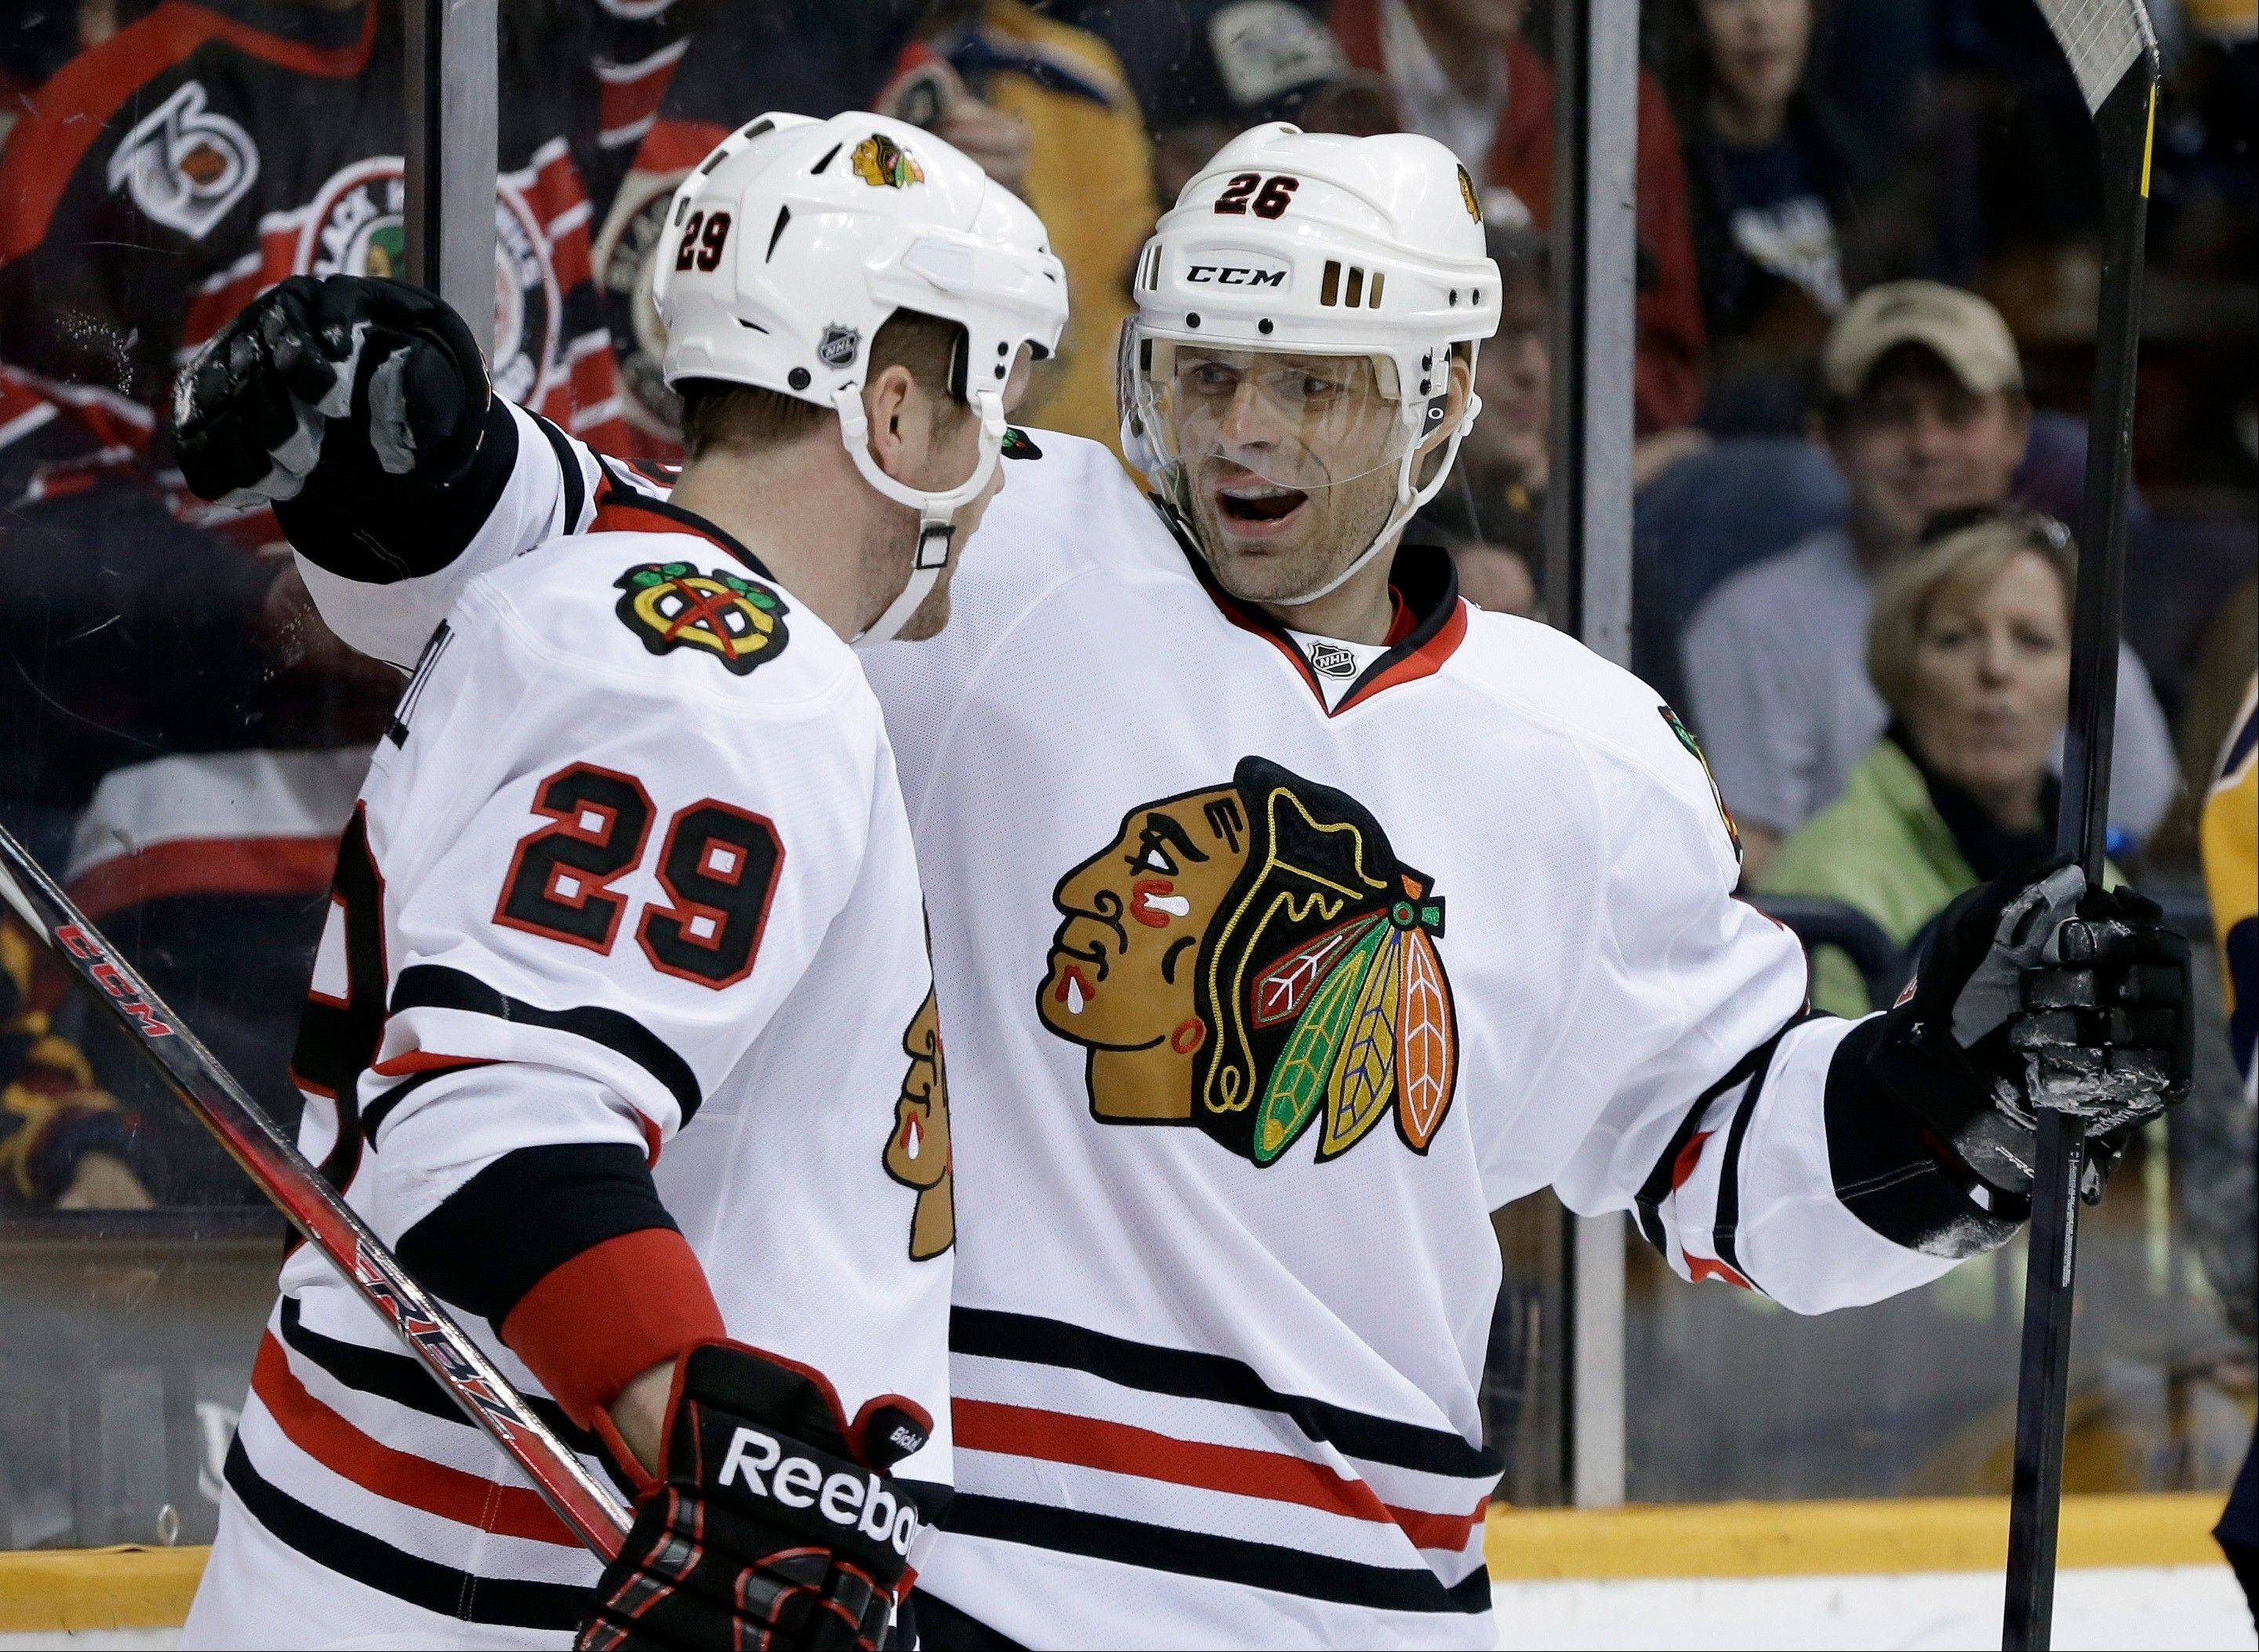 Blackhawks left wing Bryan Bickell is congratulated by Michal Handzus after Bickell scored on a Handzus assist for the only goal in Saturday�s victory against the Predators at Nashville.